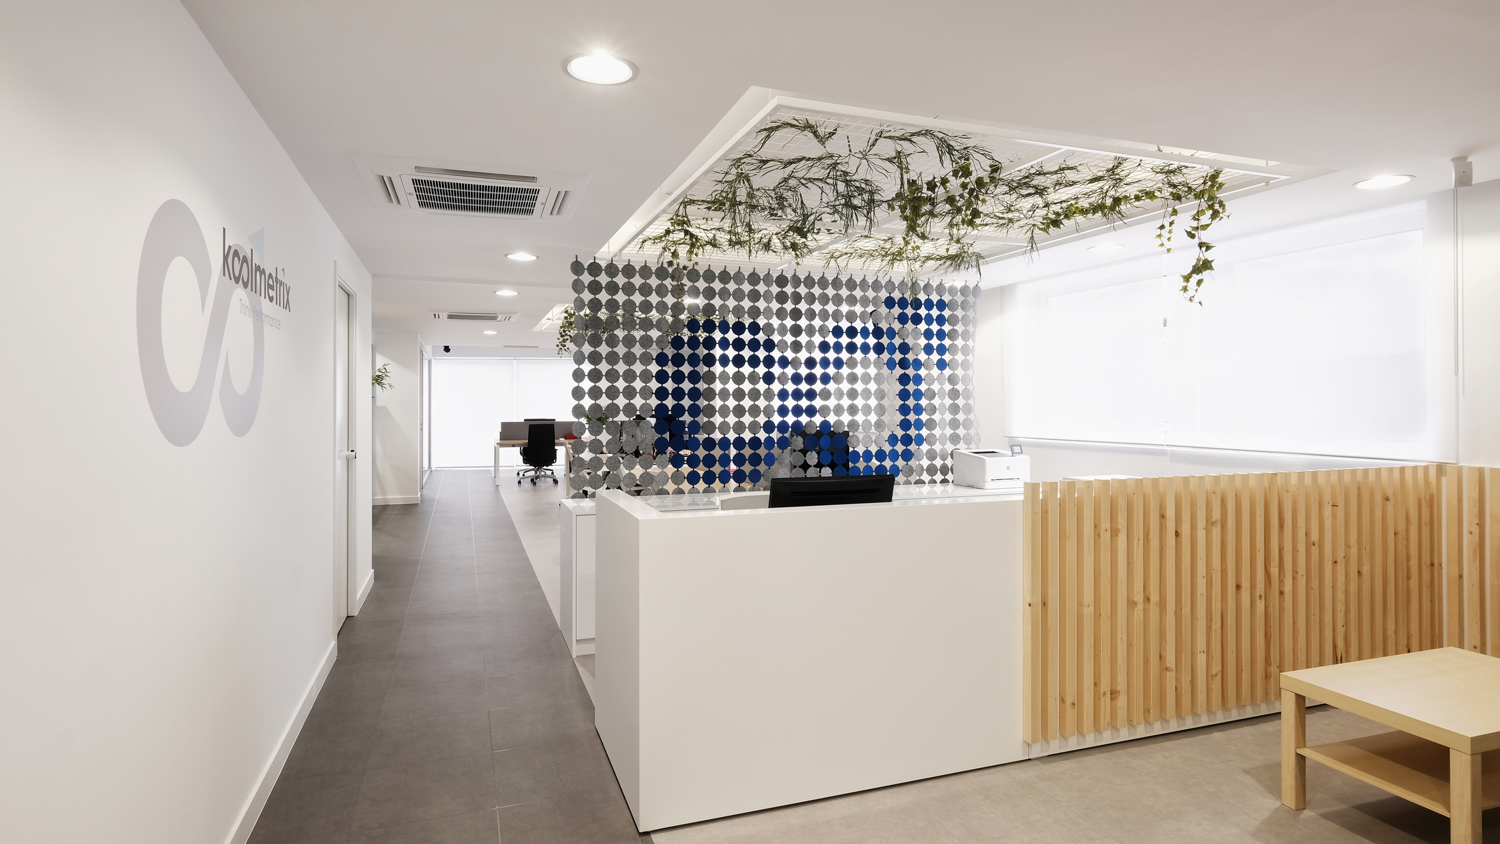 Koolmetrix offices,  aplusm architects